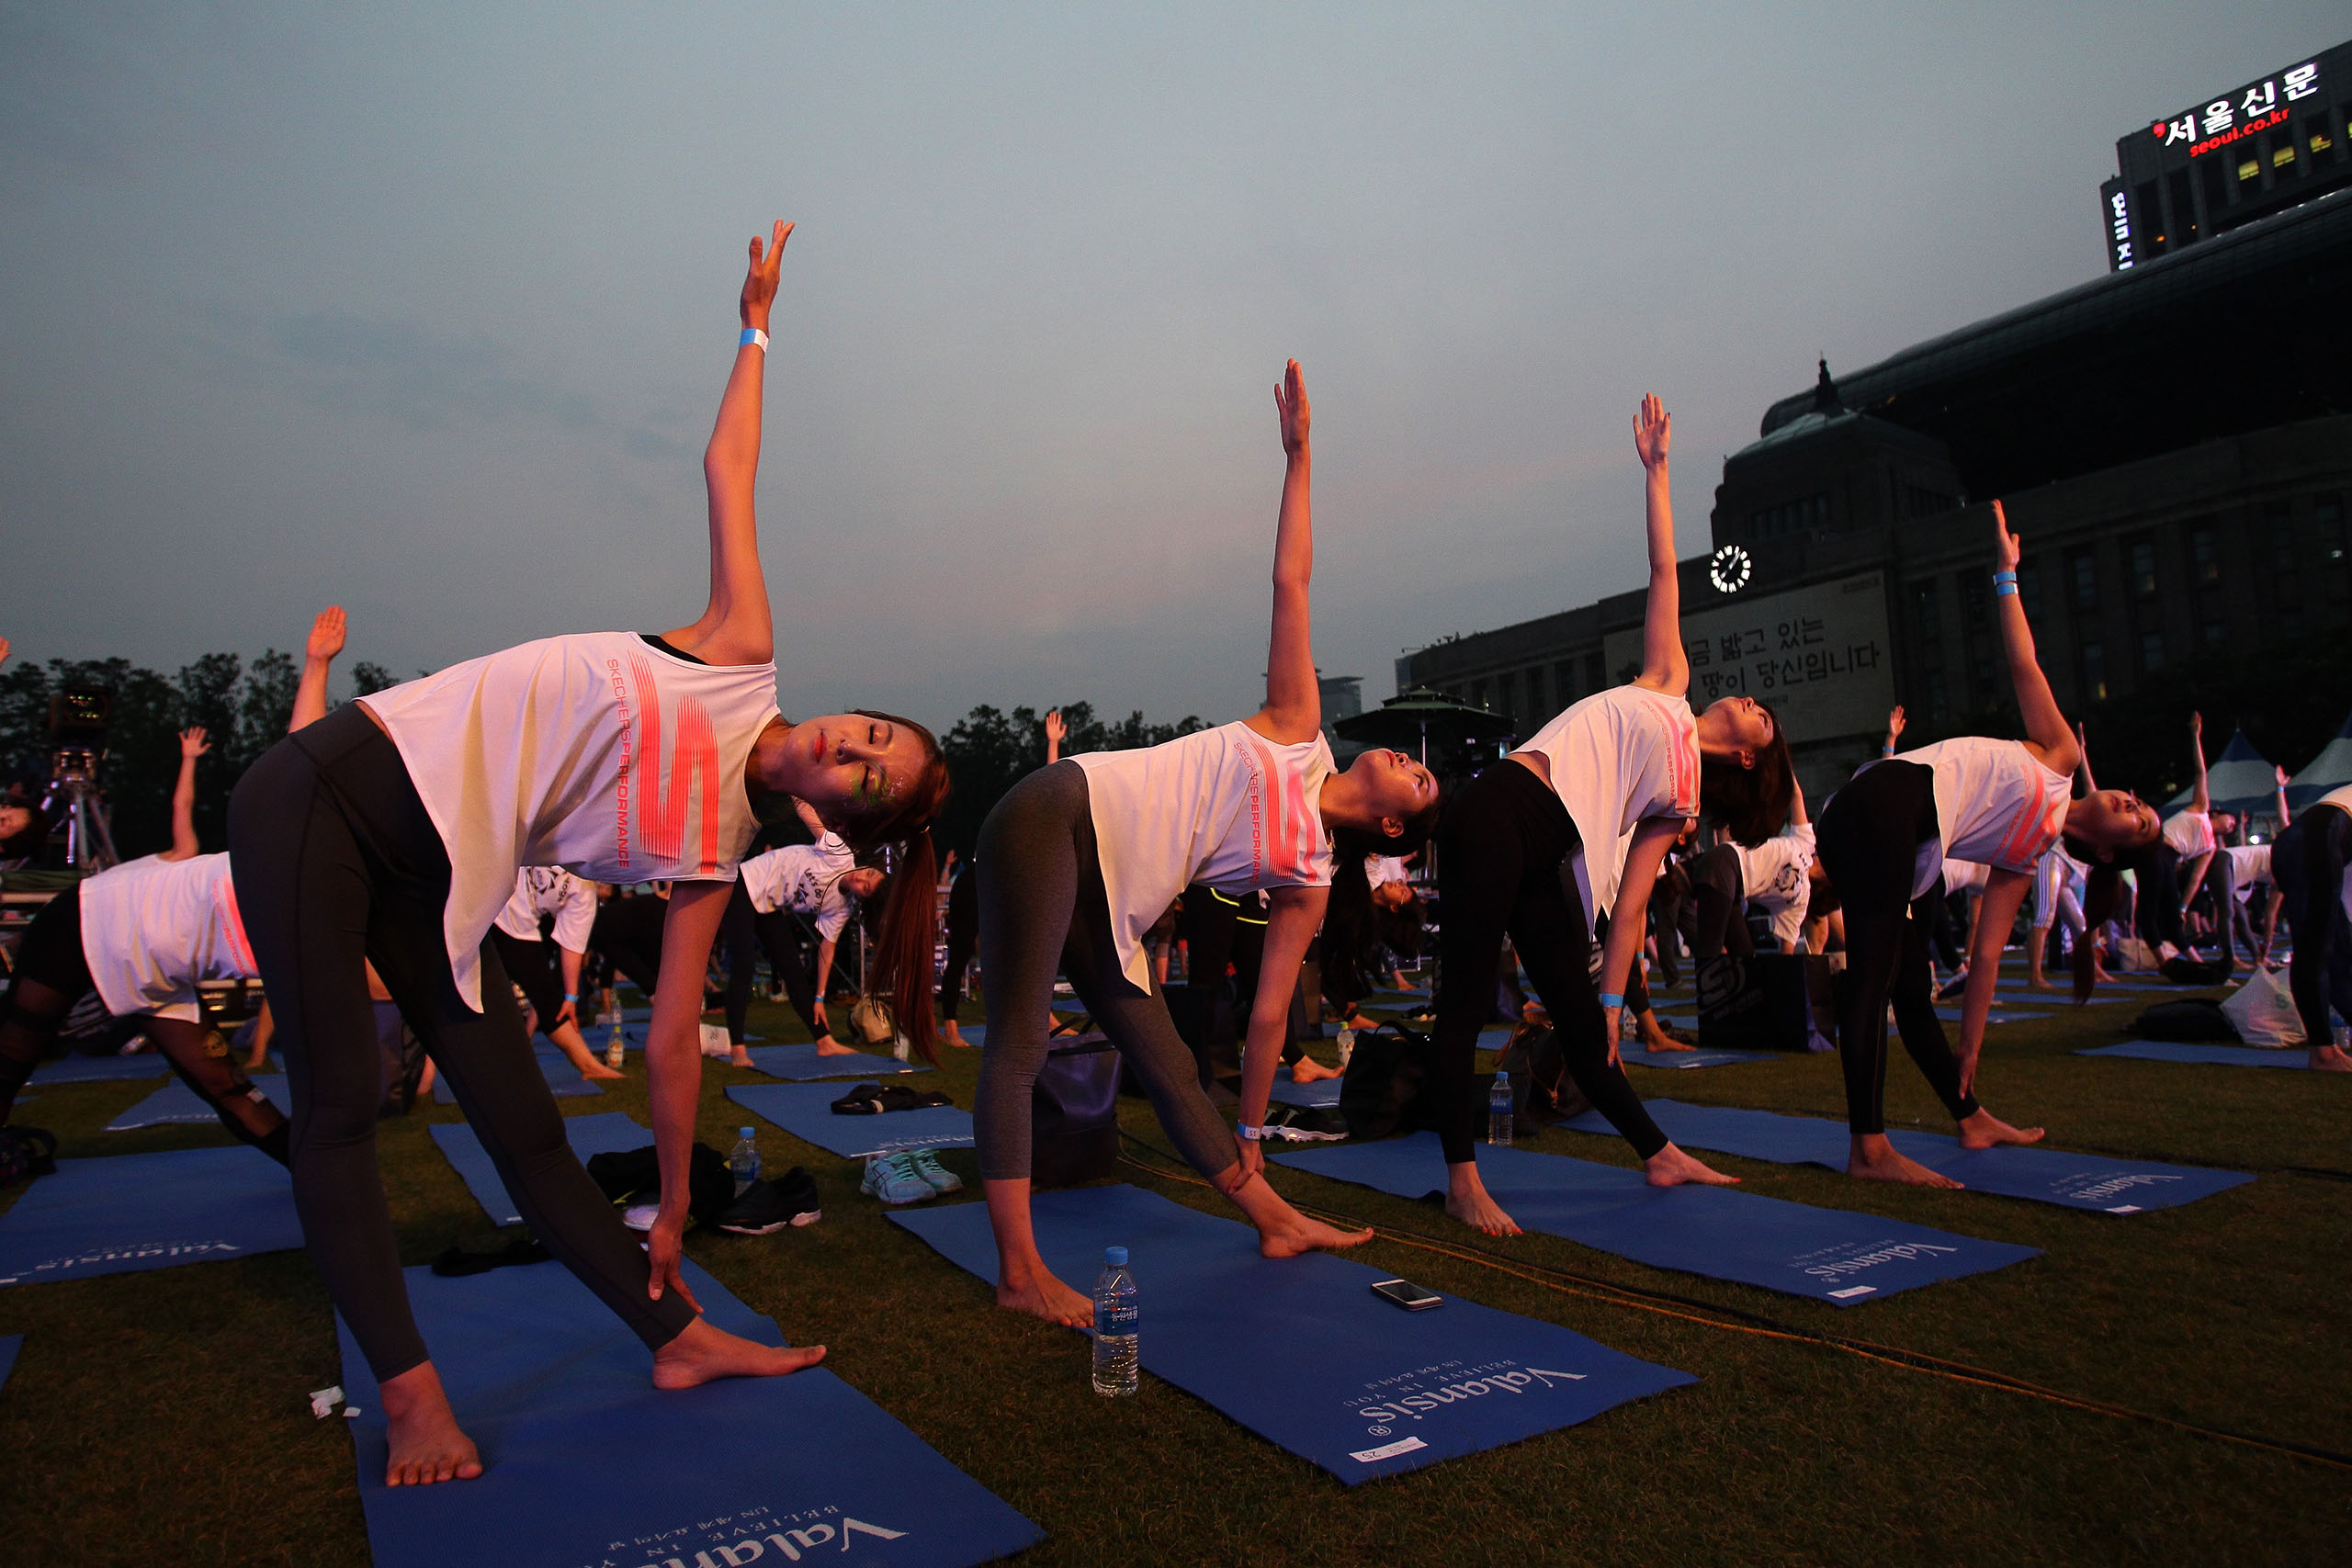 People perform yoga to mark International Day of Yoga in Seoul, South Korea, on June 21, 2016.